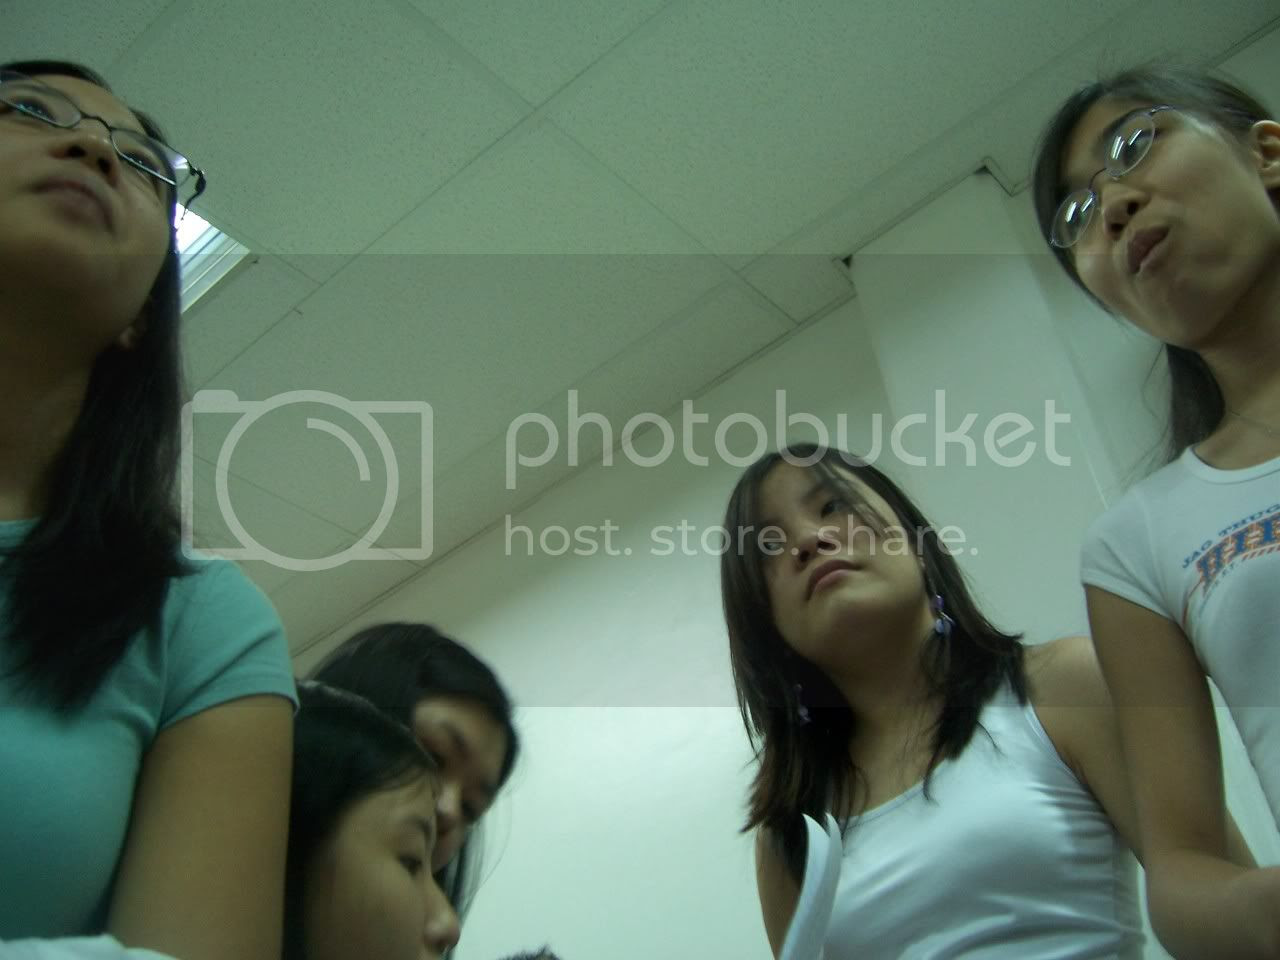 Oooh, another one of those shots I learned from Art Appreciation class. This was when I realized we'll be enrolling like the upperclassmen. I relied too much on things, it seems. Image hosted by Photobucket